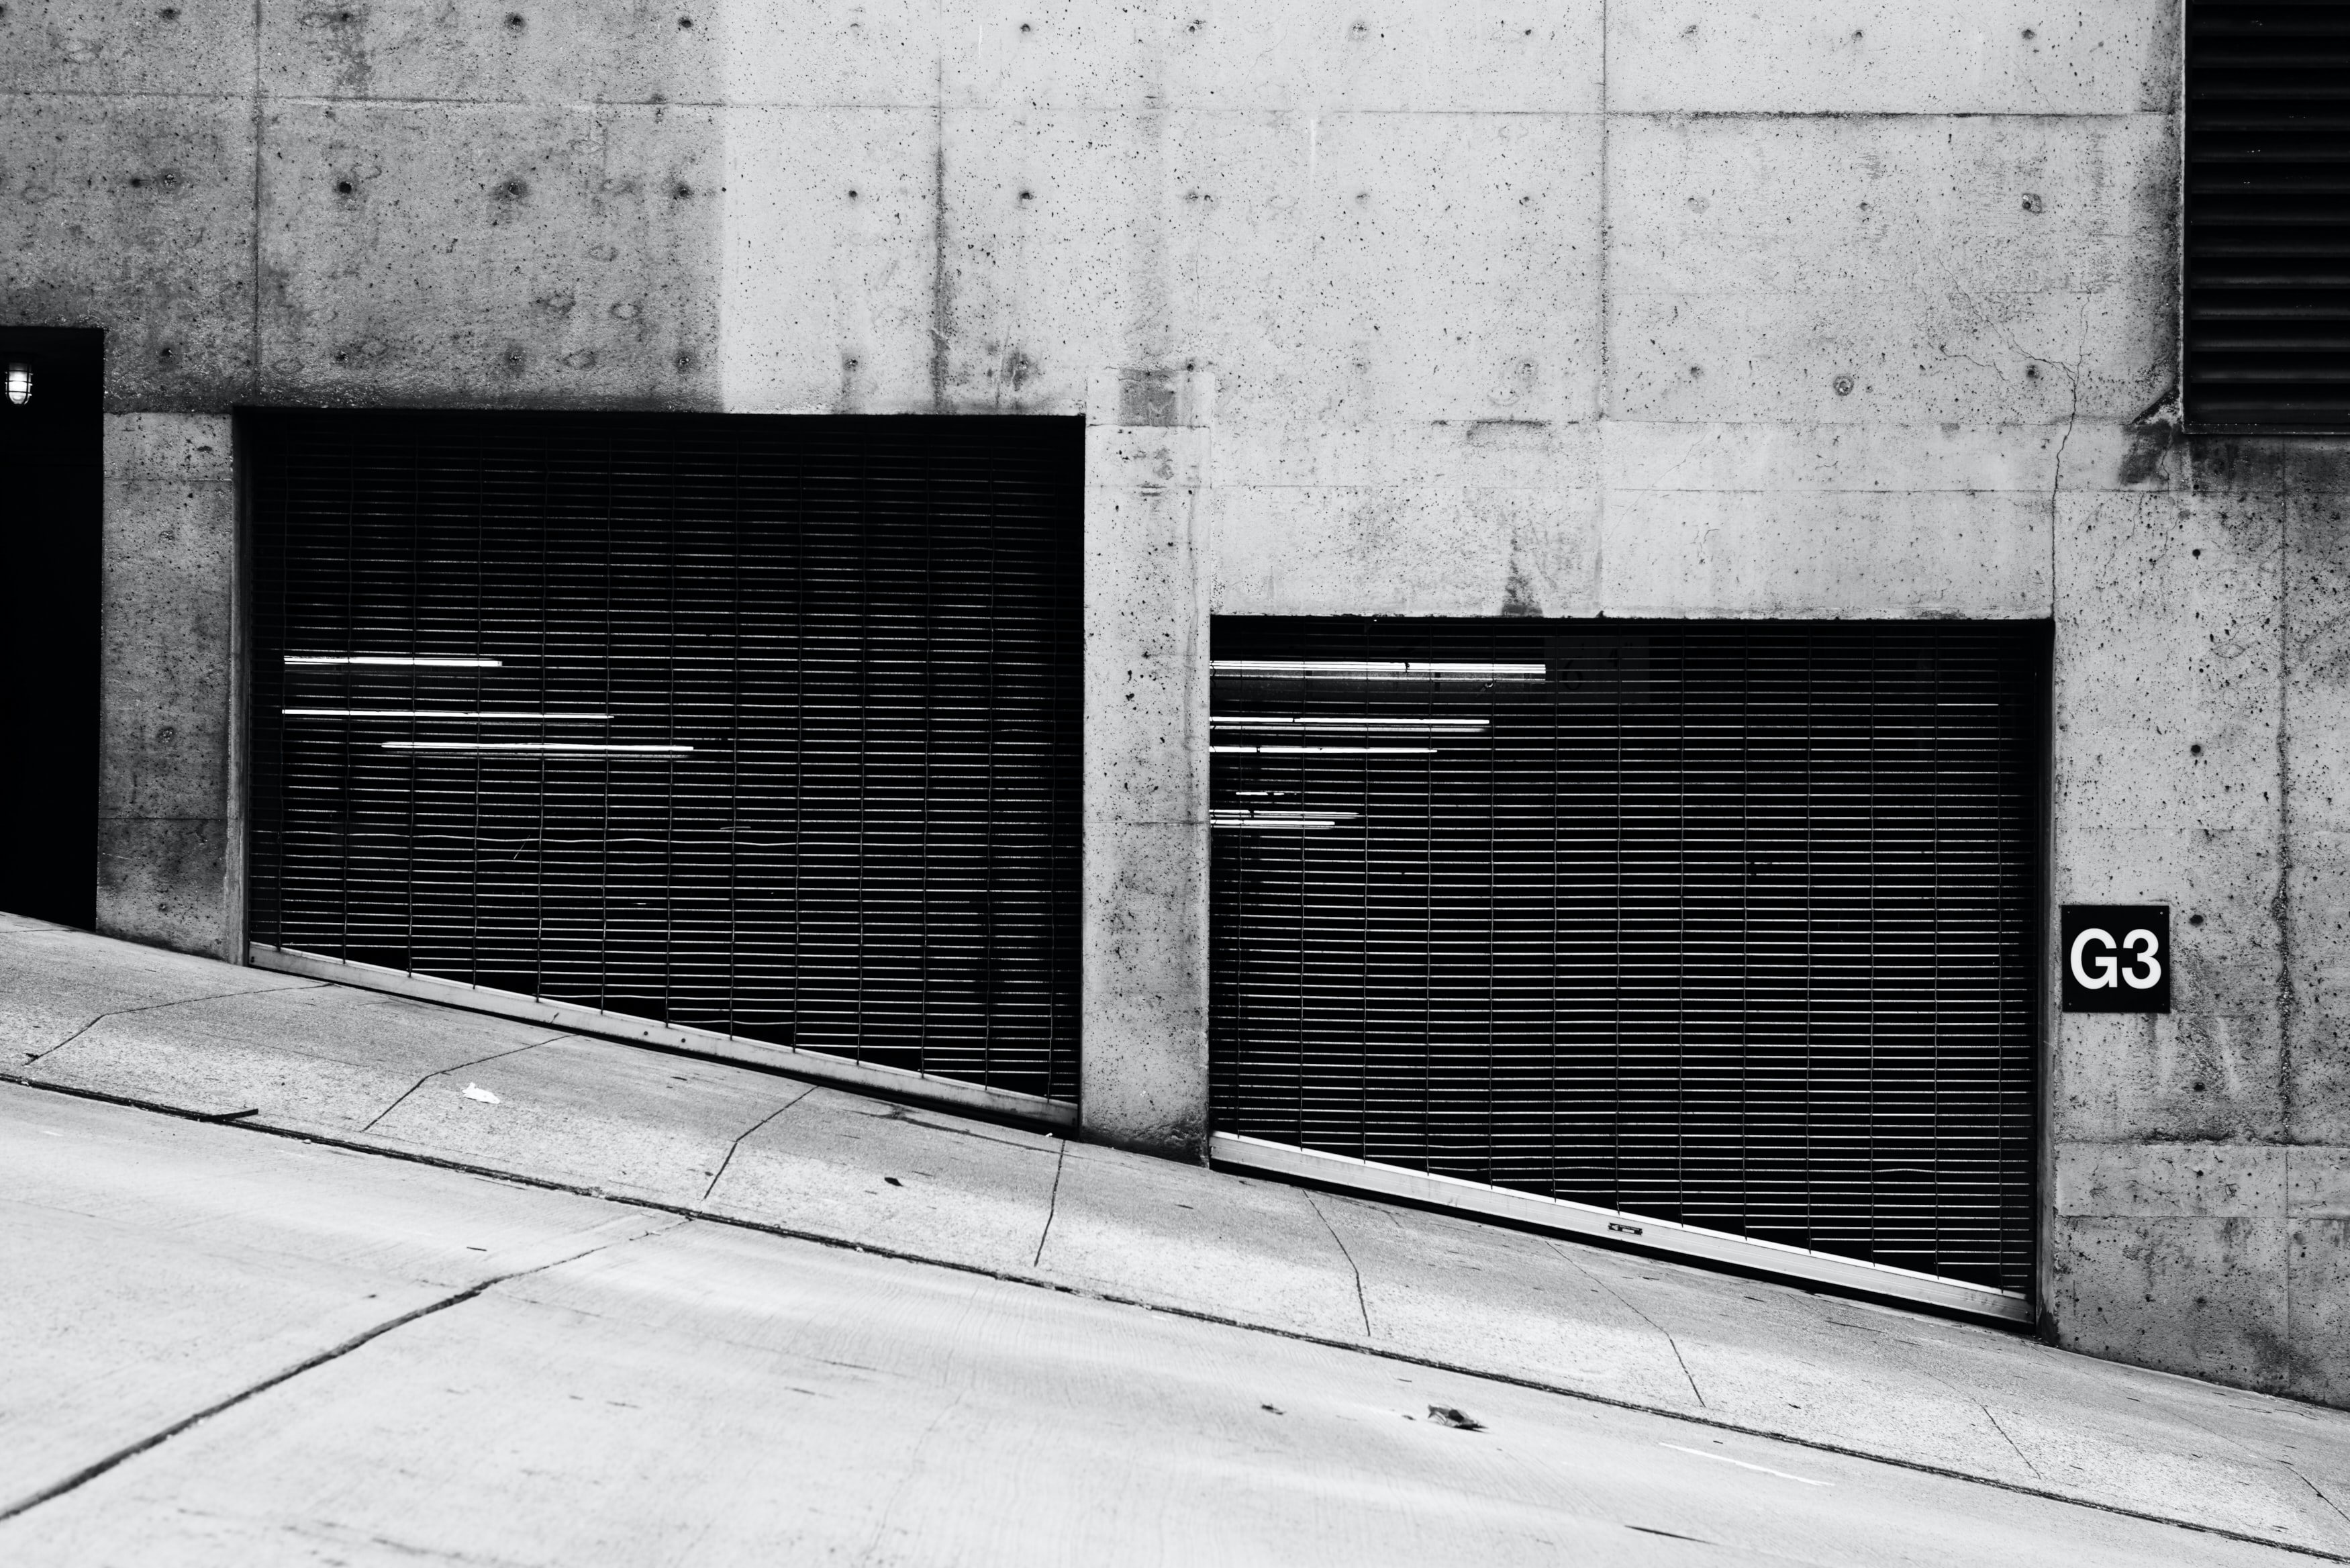 A black and white photograph of the entrance of a parking garage.